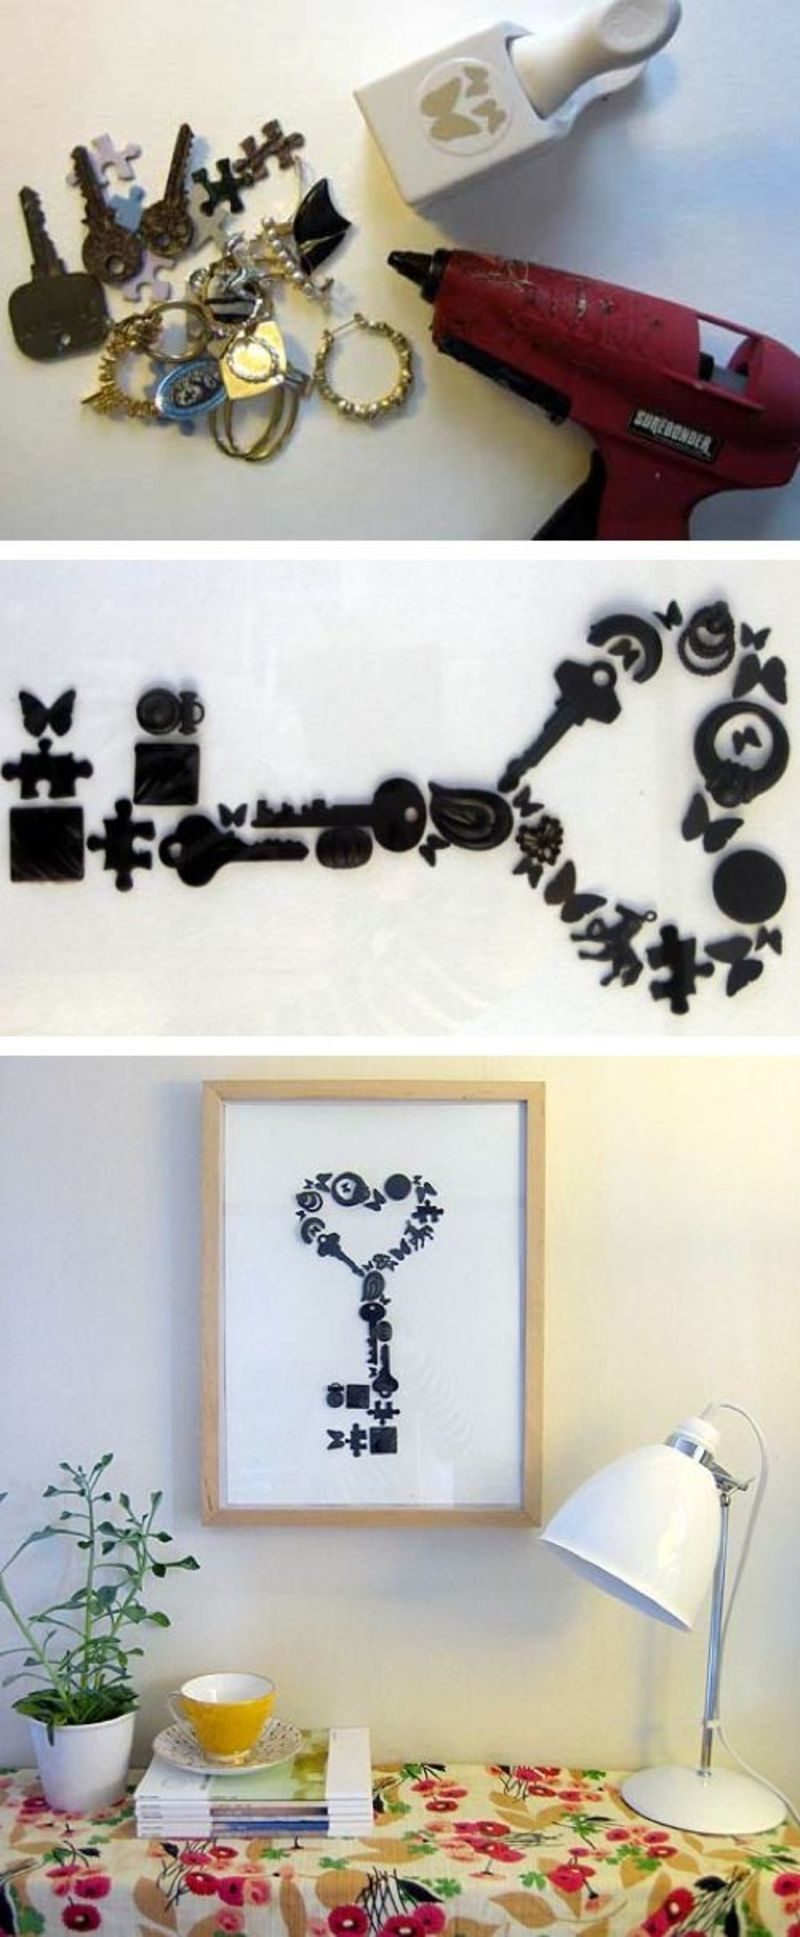 35 Amazing Diy Home Decor Projects To Spruce Up Your Space Diy Handmade Diy Wall Art Art Diy